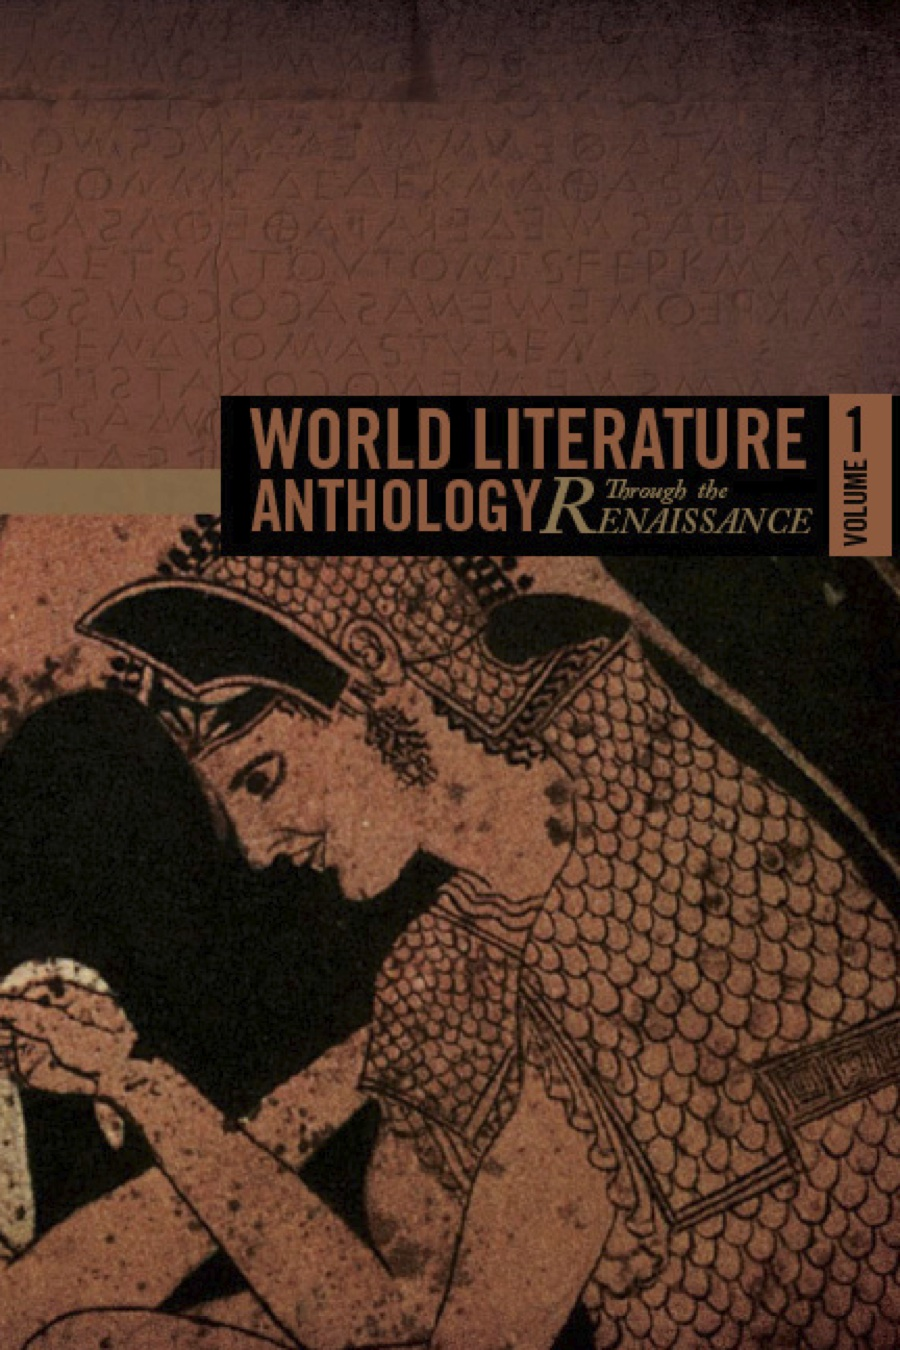 The cover of Vol. 1 of the World Literature Anthology has an ancient artwork of a woman in an ornate headdress.